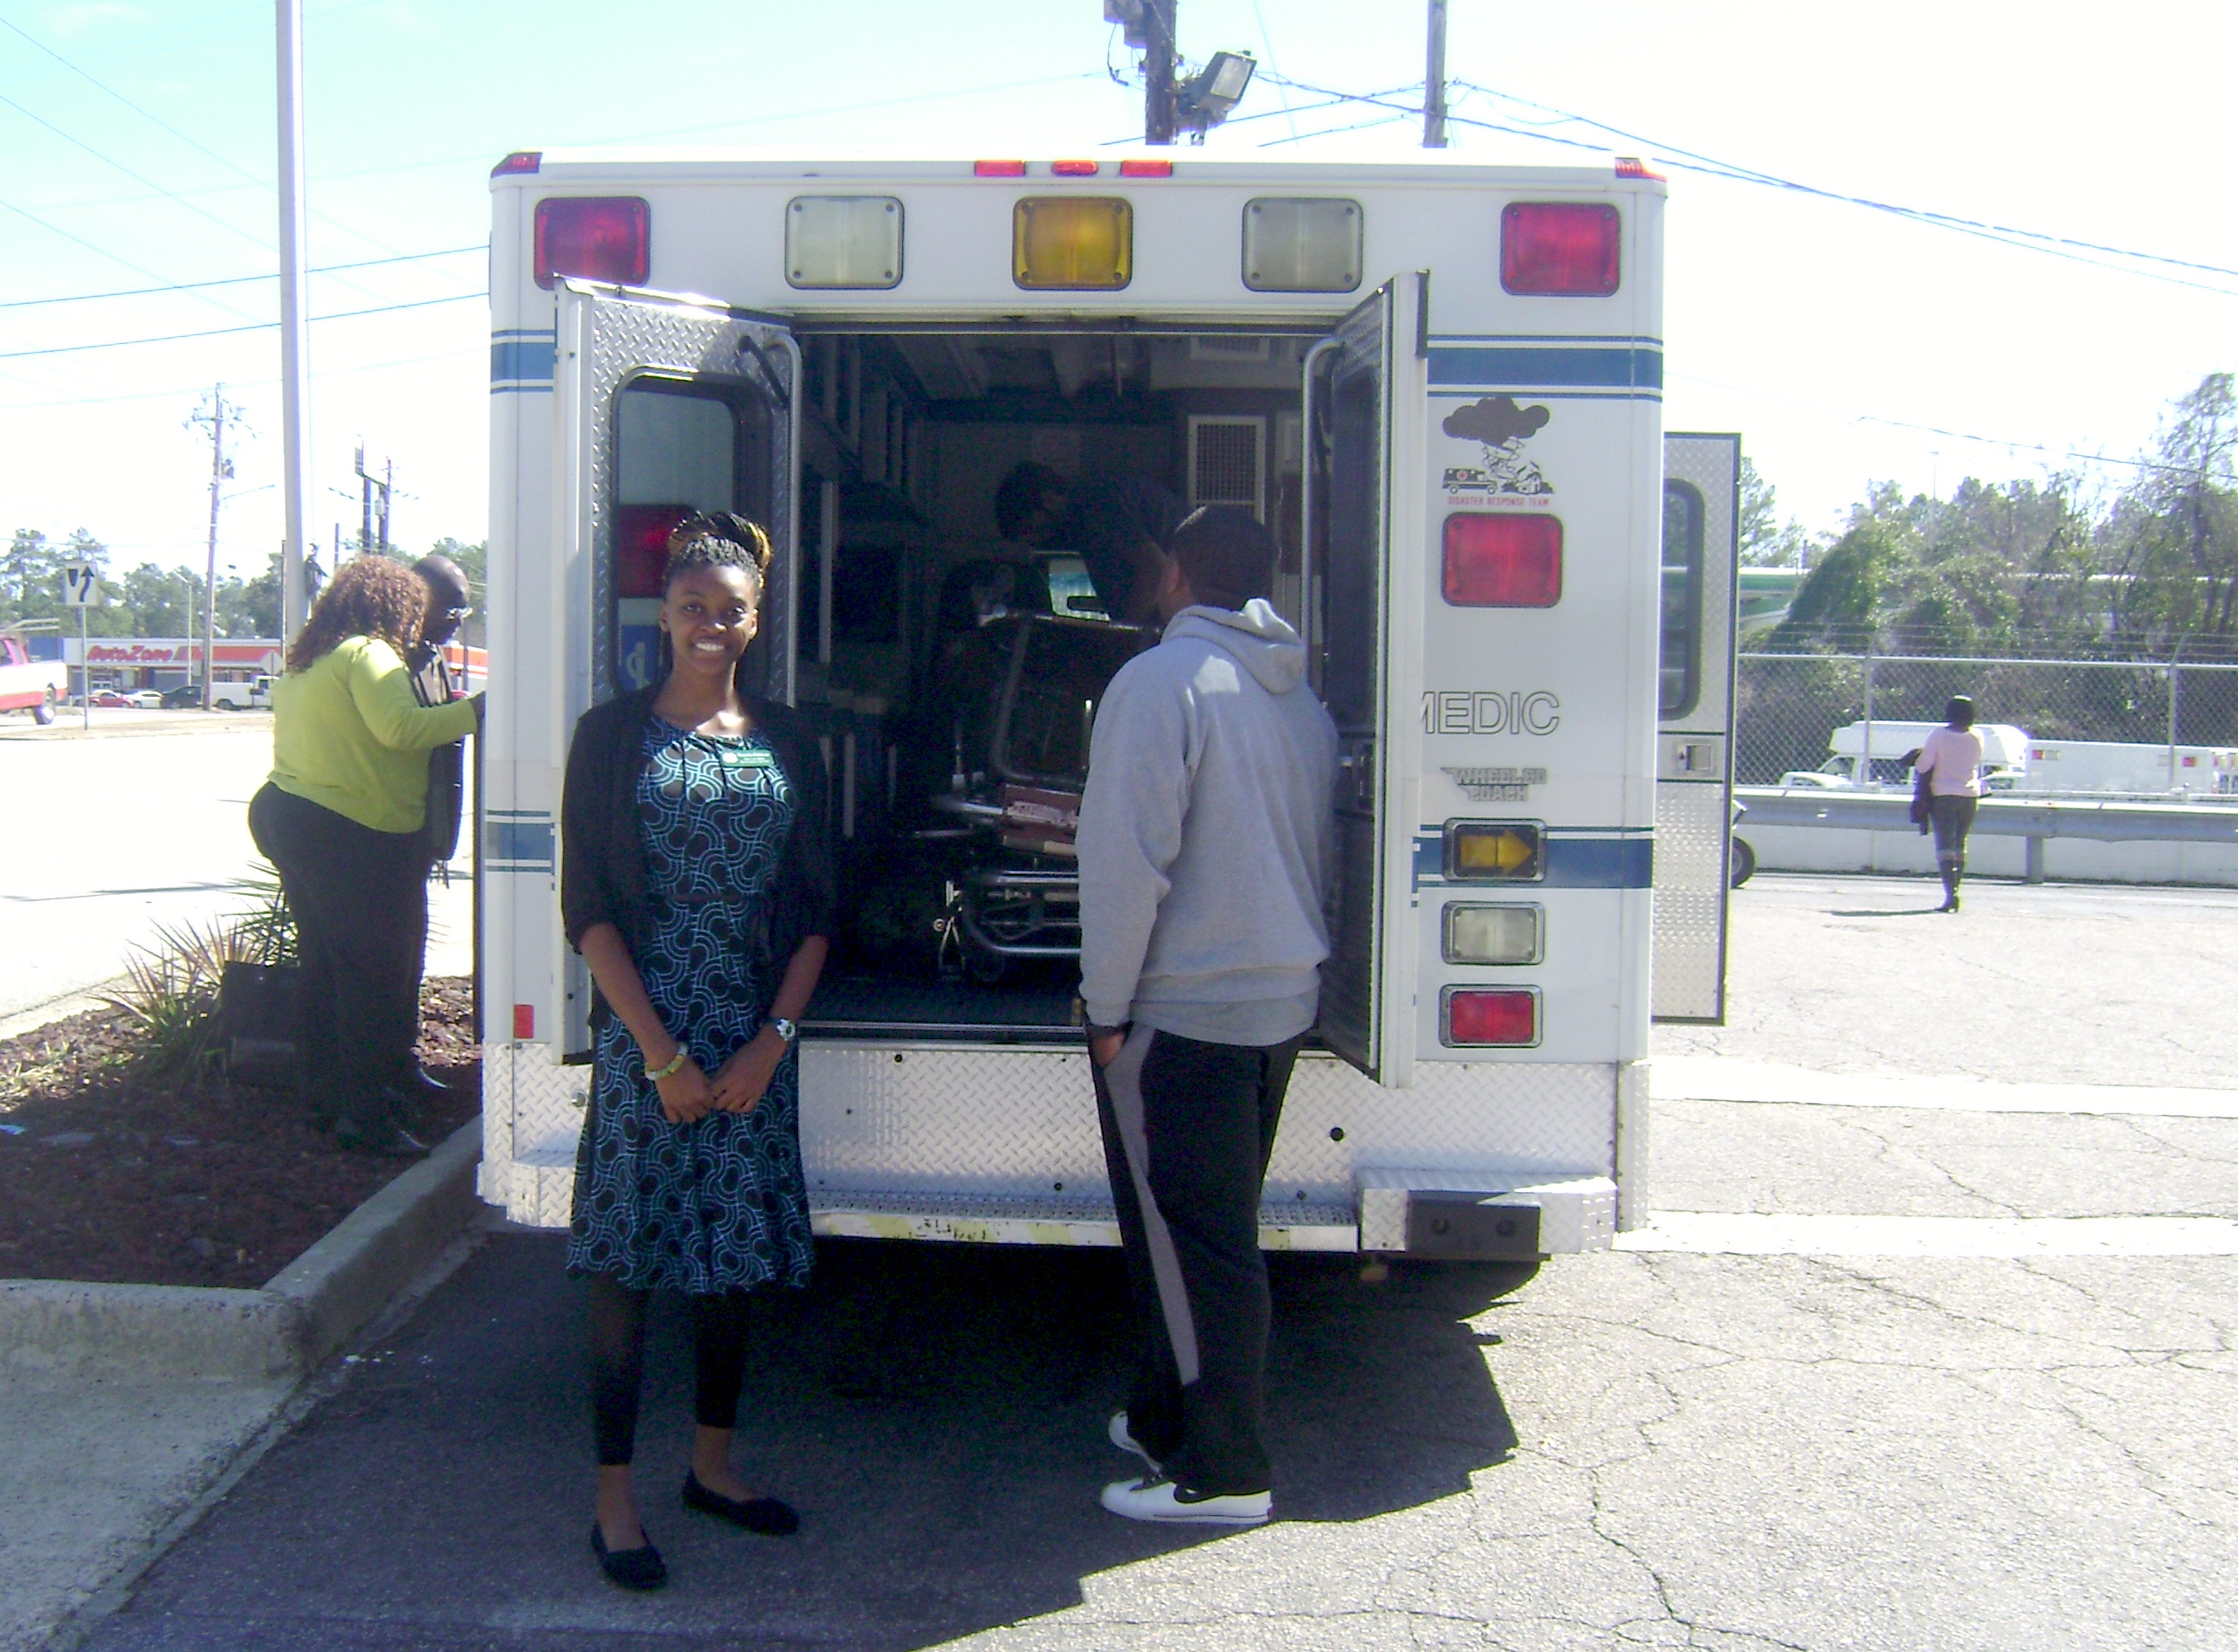 Shamika Robinson, an 11th-grade 4-H'er in Hancock County, Georgia, sent letters and made phone calls that resulted in an ambulance being donated to the Nhyira Medical Relief organization.    Robinson's search for an ambulance ended rather quickly when Jim Adkins, CEO of SouthStar EMS in Augusta, donated a fully equipped ambulance stocked with medical supplies. Having been on eight mission trips to Romania, Adkins had seen firsthand the great need for medical services in developing nations.